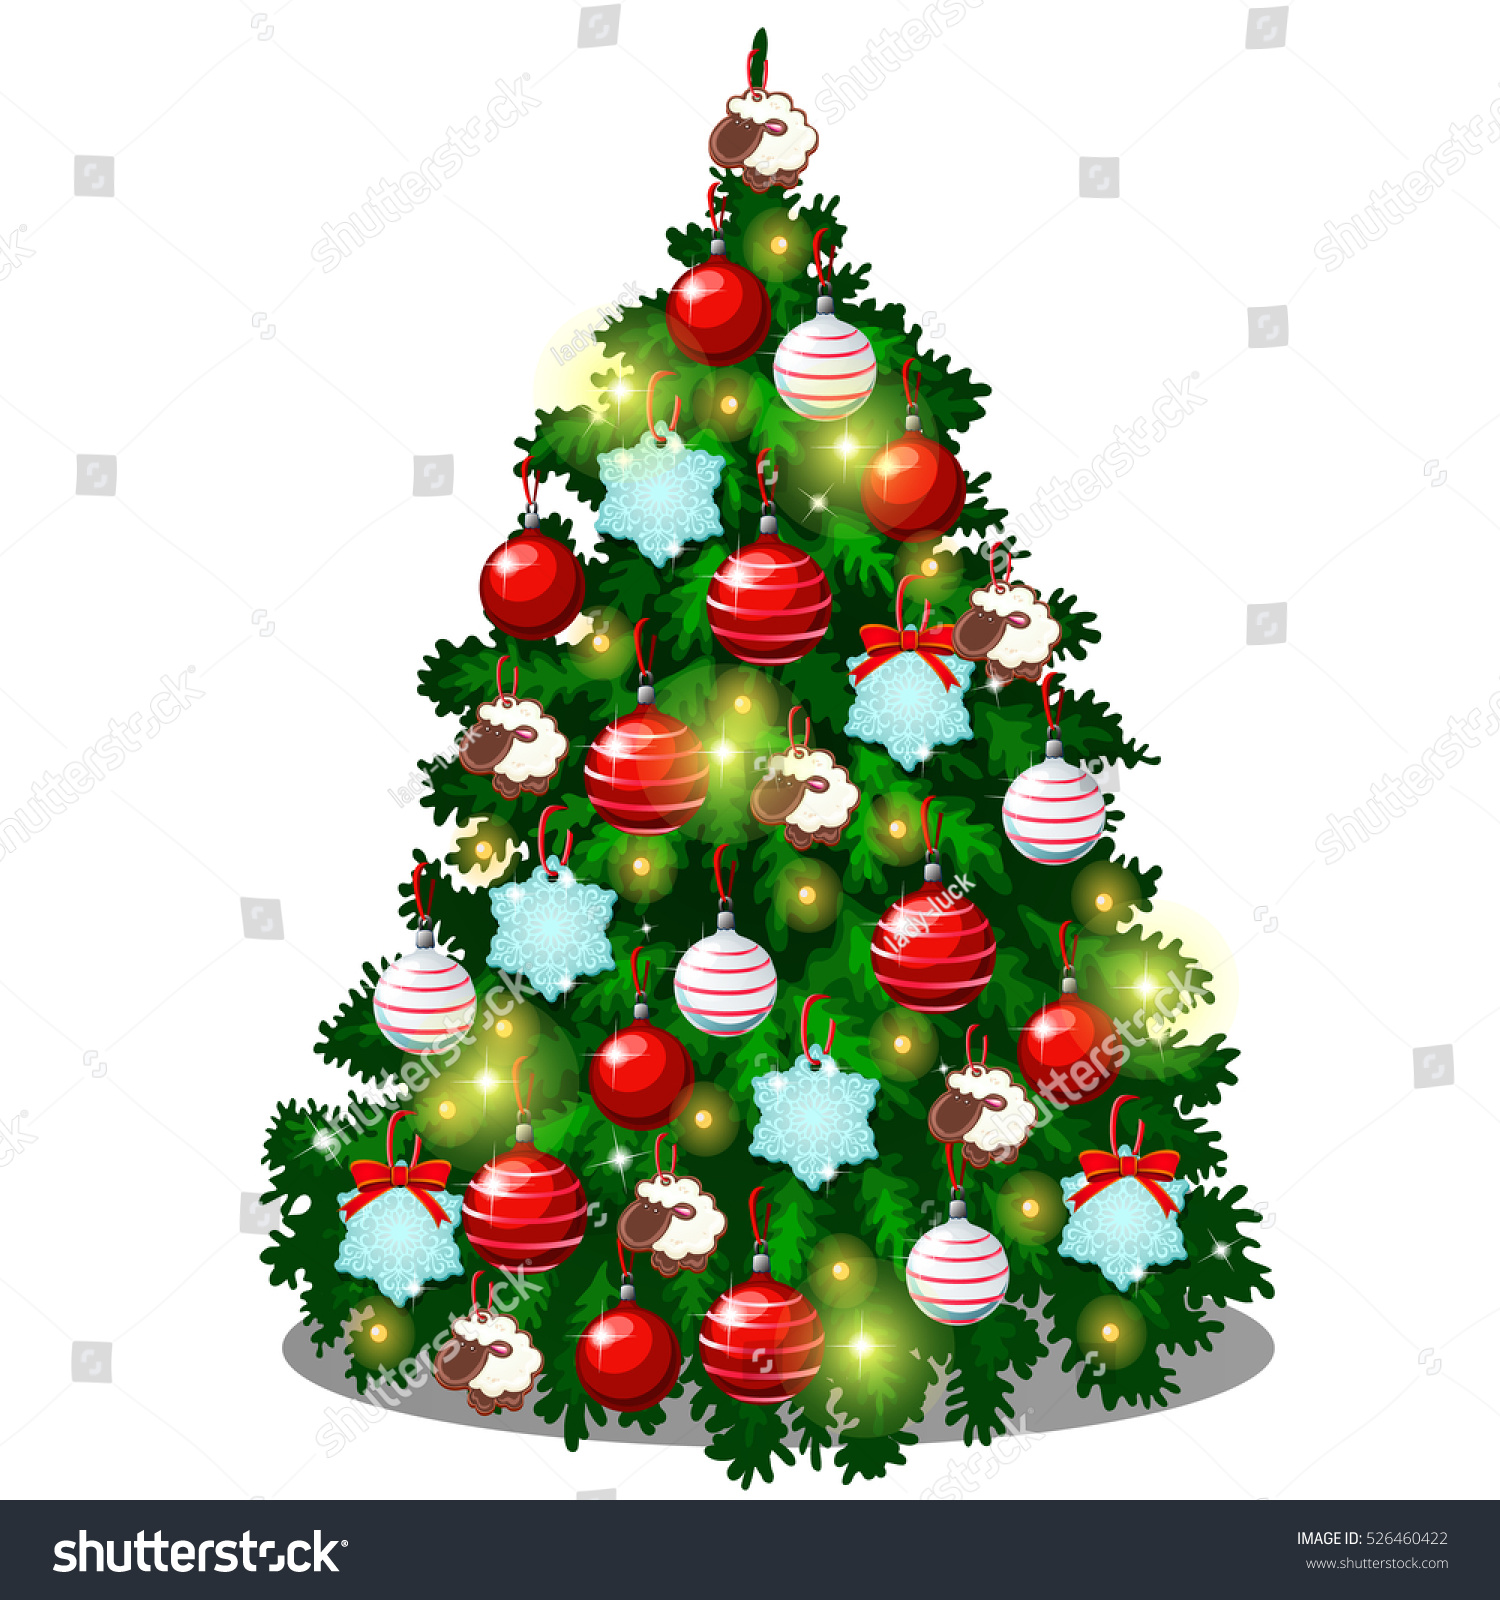 Sample Christmas Tree Decorating Ideas: Sketch With Cute Christmas Tree With New Year Gifts